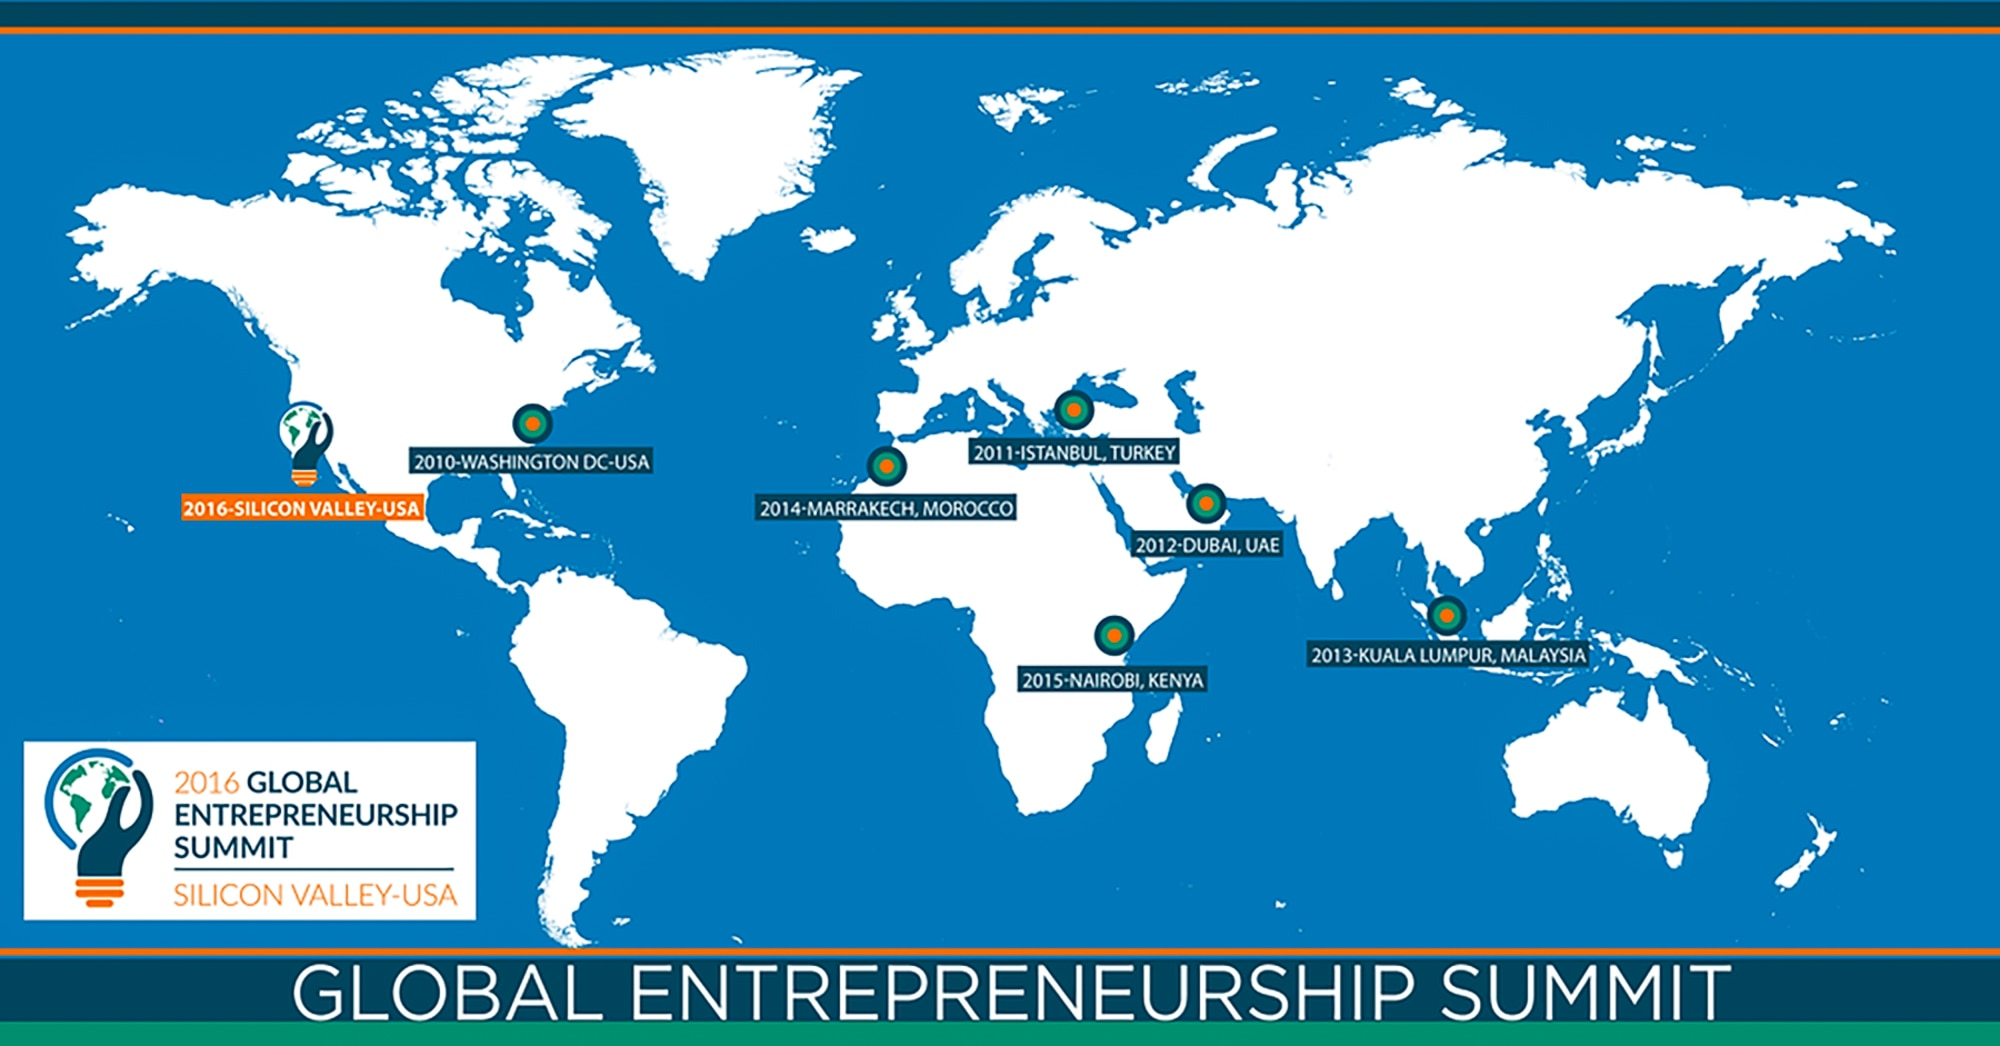 Startups head to silicon valley for global summit shareamerica map of world showing where previous global entrepreneurship summits have been held courtesy of ges gumiabroncs Image collections